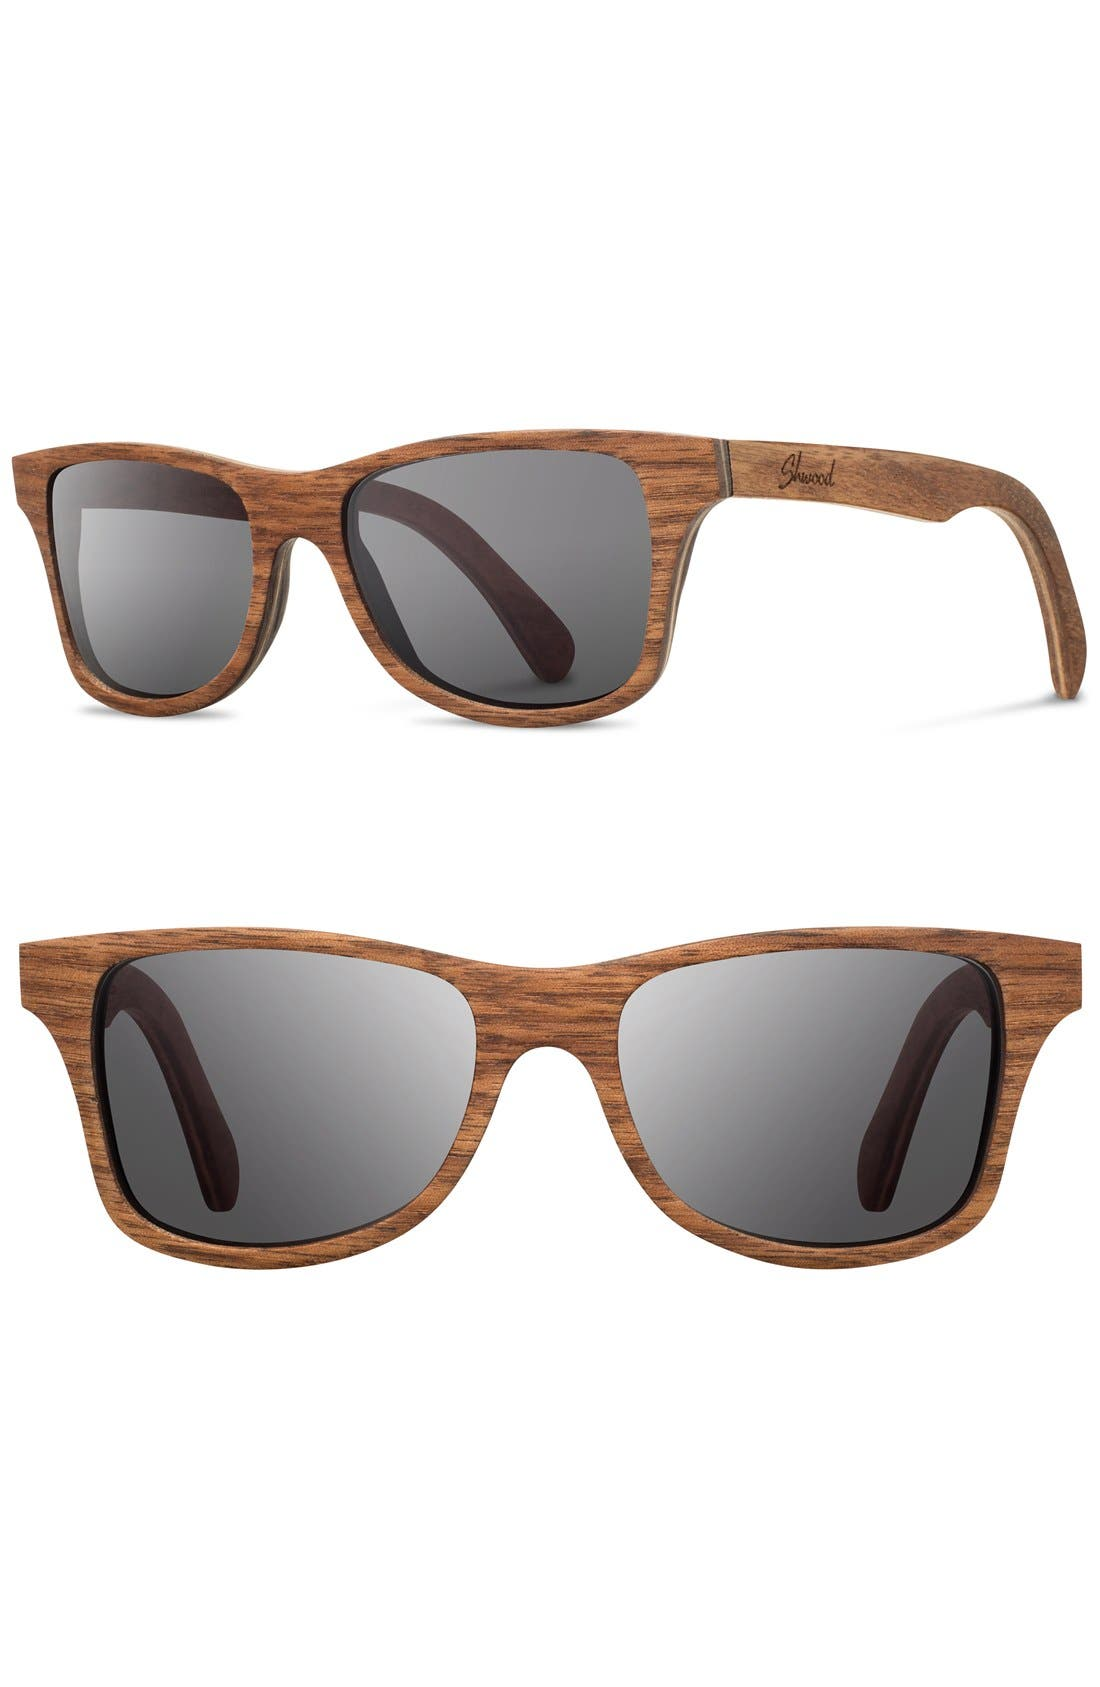 'Canby' 54mm Wood Sunglasses,                             Main thumbnail 1, color,                             210